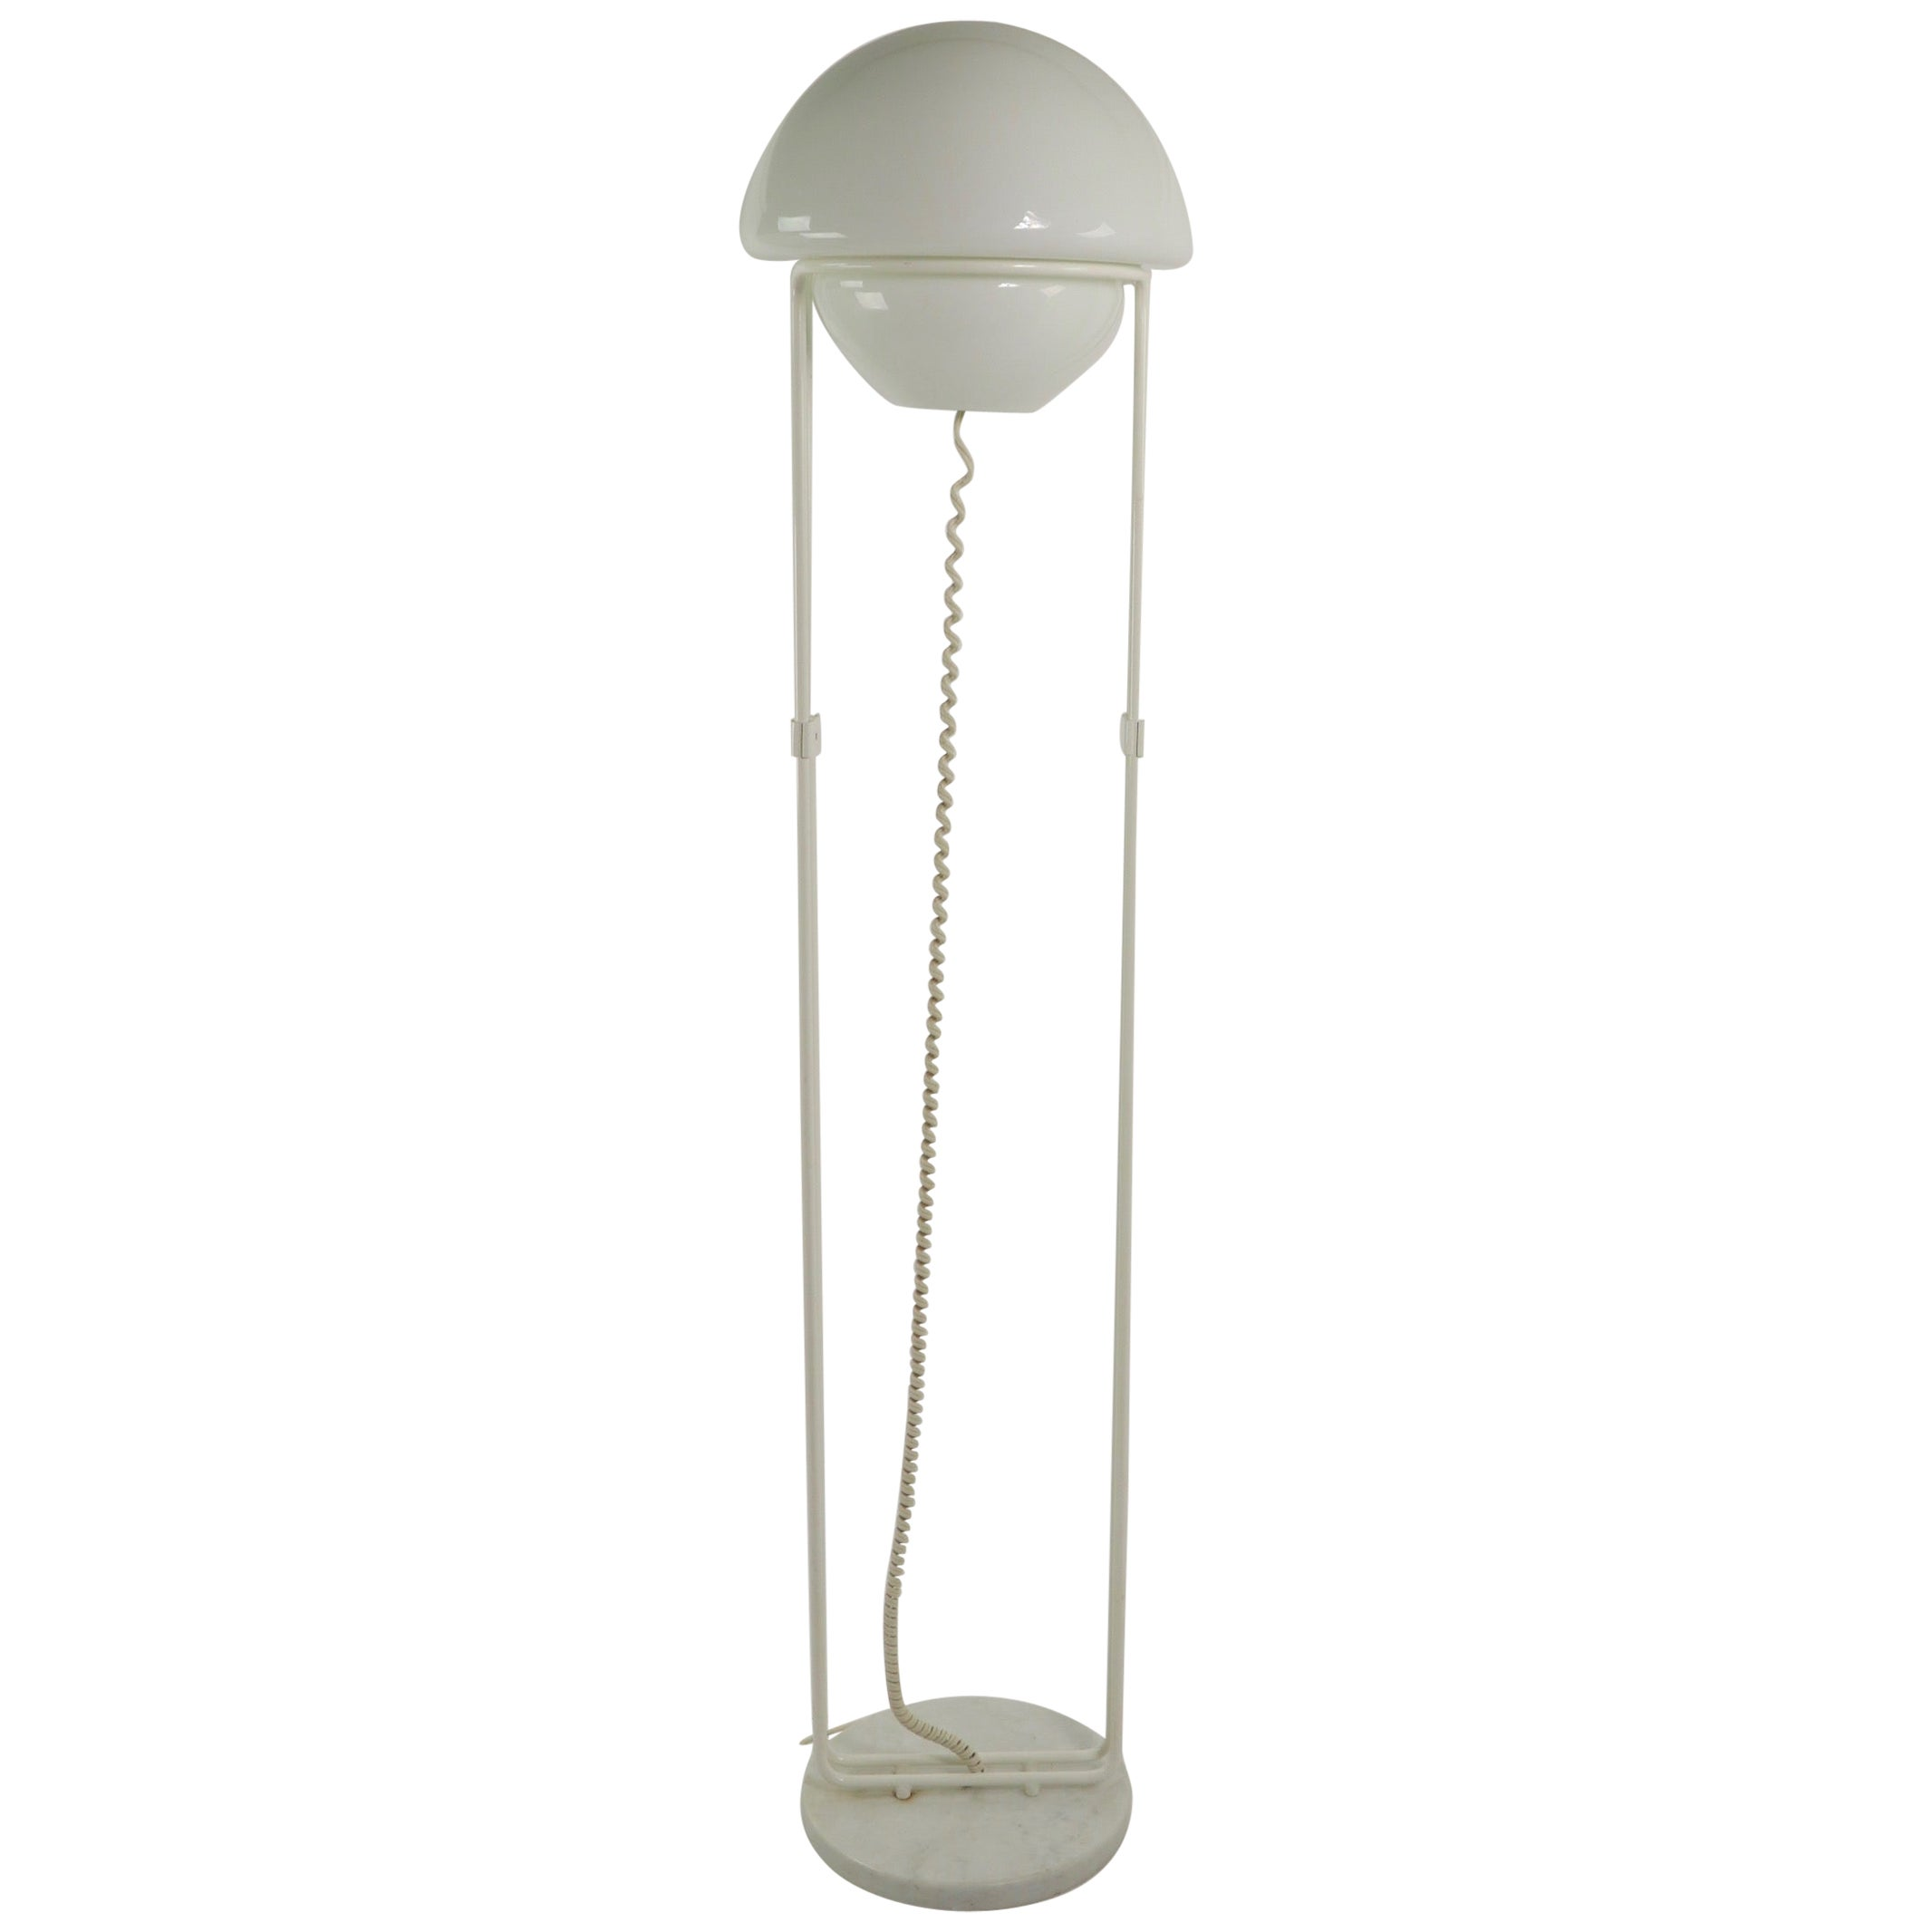 Italian Modernist Floor Lamp After Fabio Lenci for Guzzini